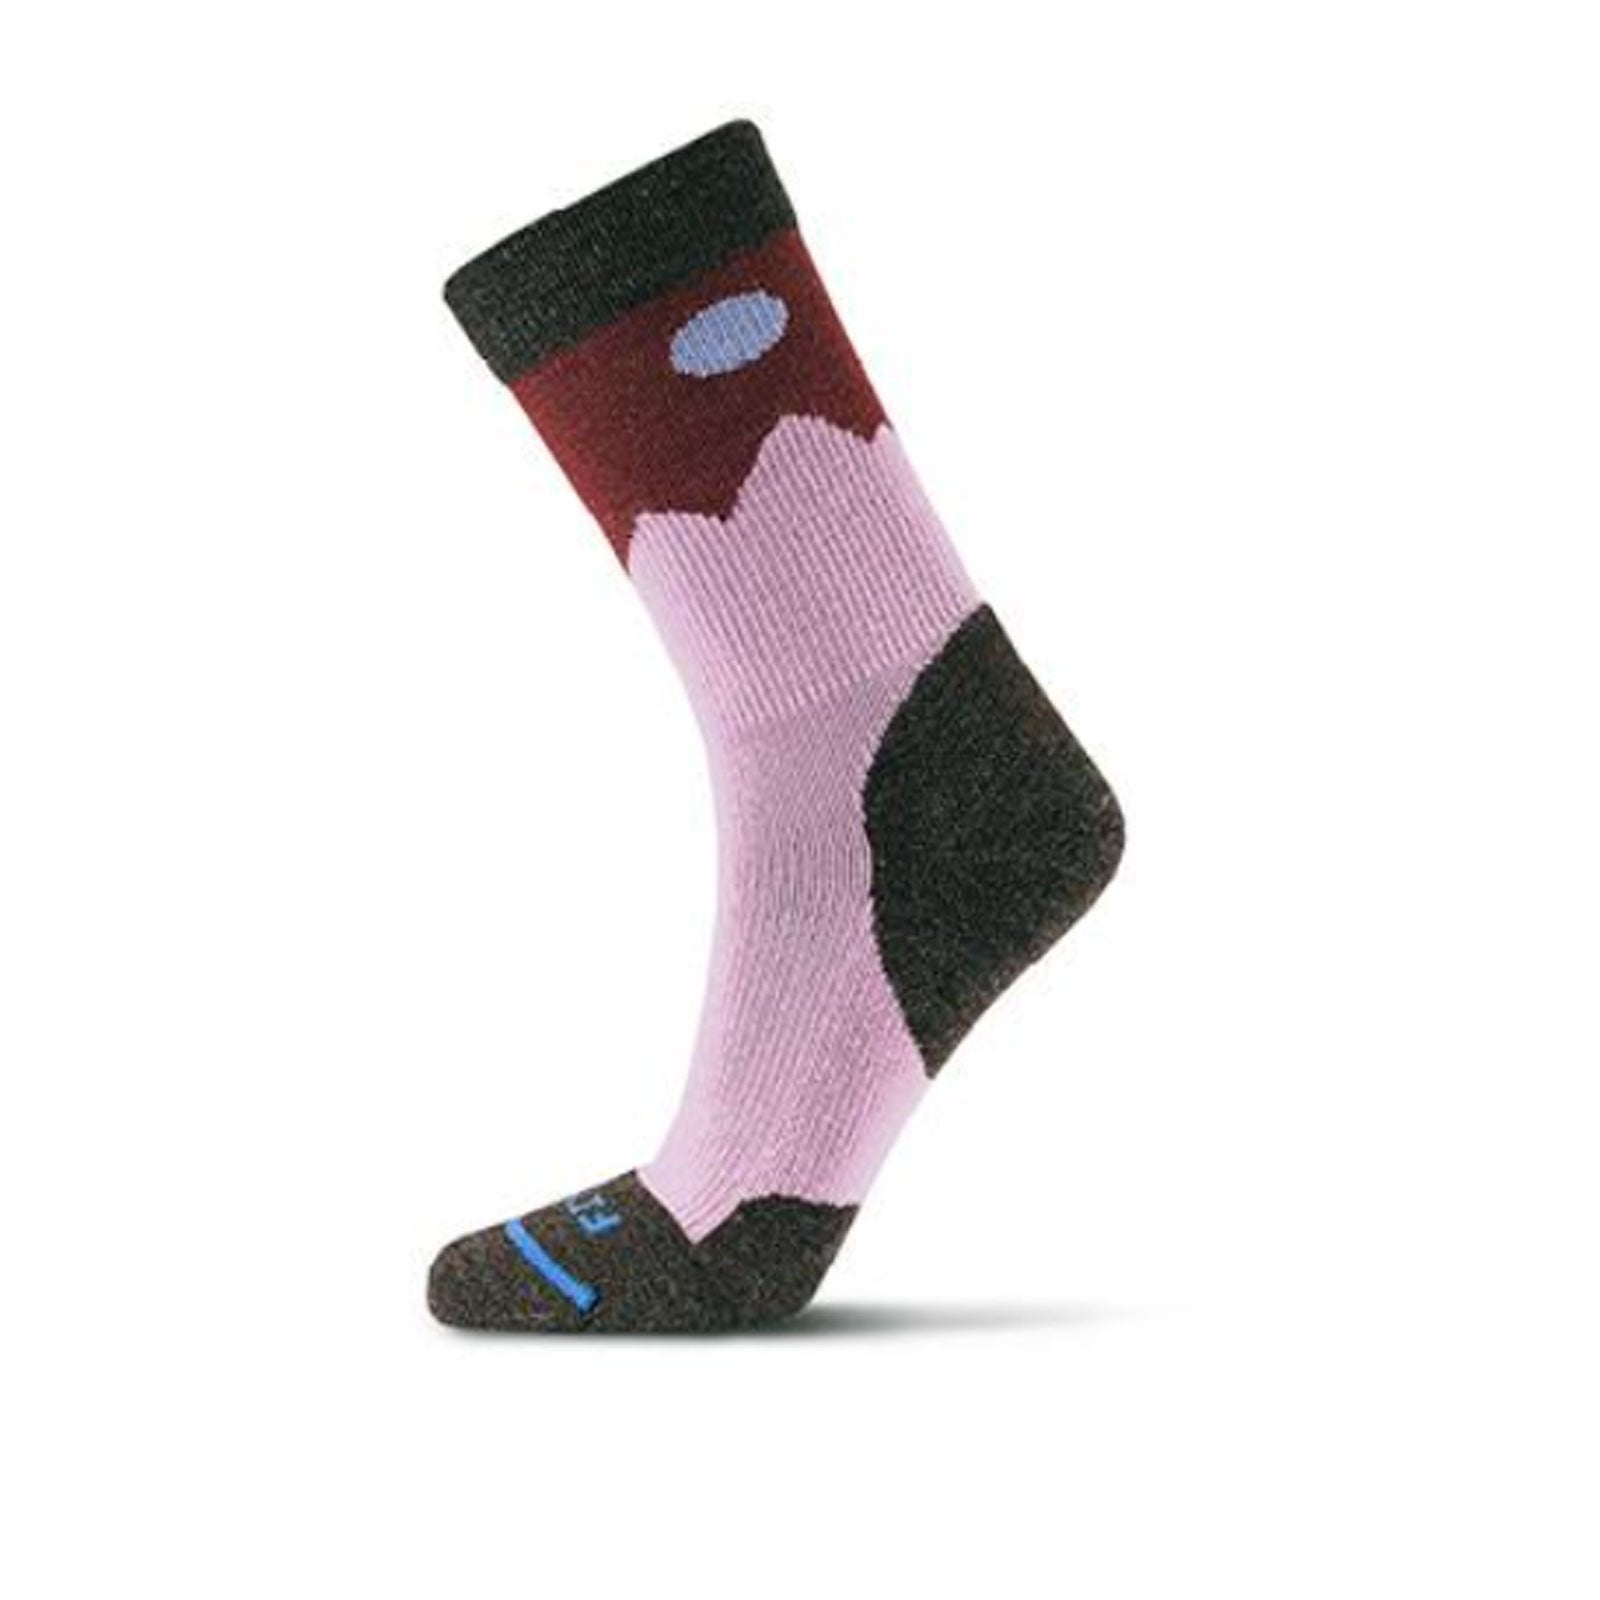 Fits Light Hiker Crew (Unisex) - Chestnut/Tawny Port Socks|Perf - Crew - The Heel Shoe Fitters